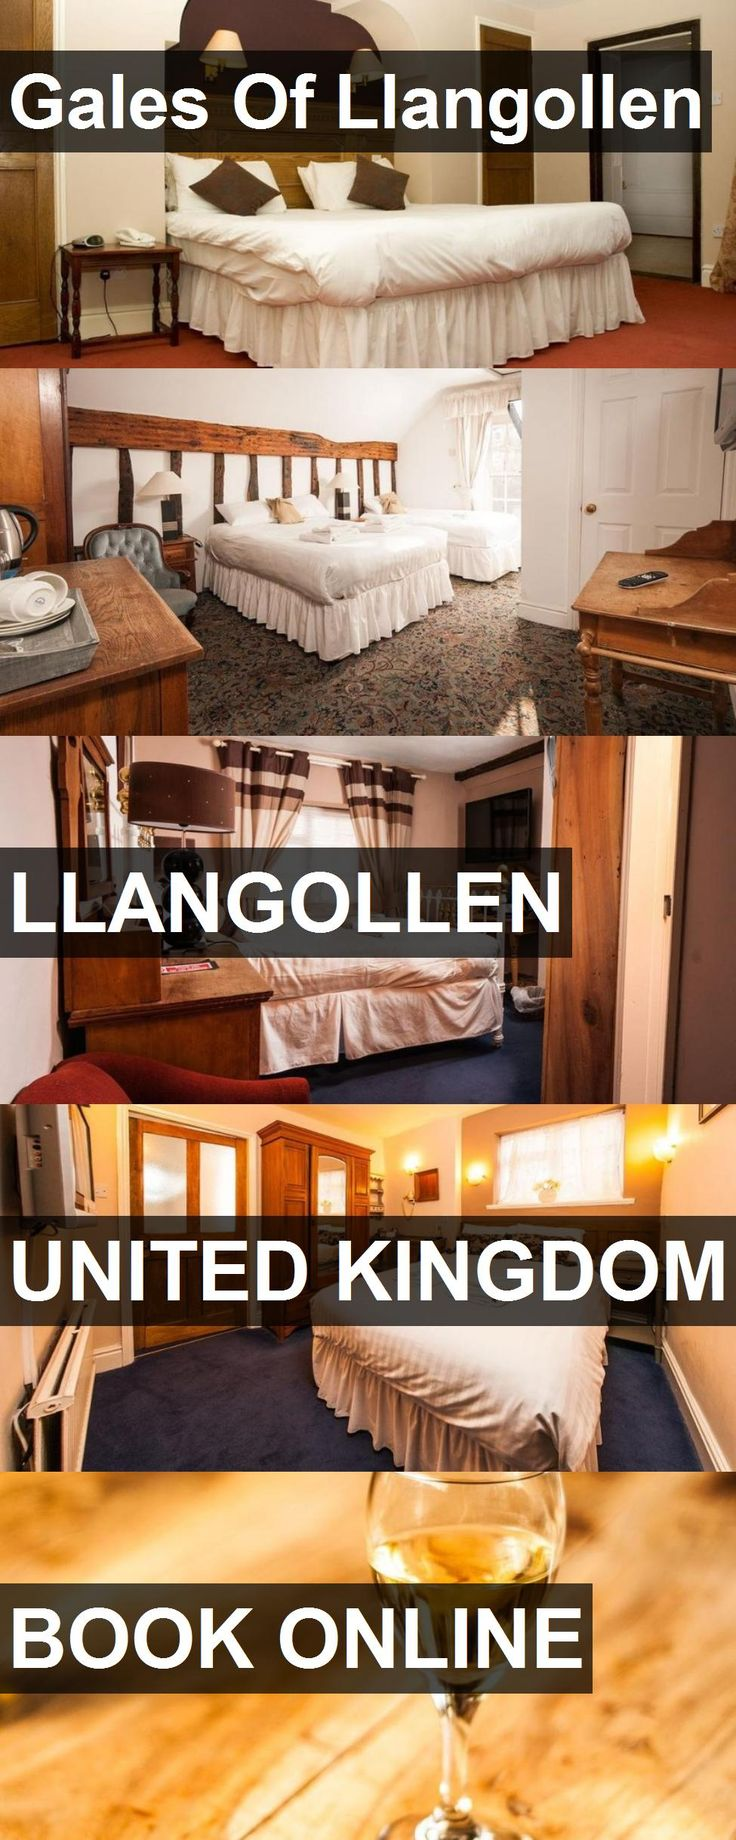 Hotel Gales Of Llangollen in Llangollen, United Kingdom. For more information, photos, reviews and best prices please follow the link. #UnitedKingdom #Llangollen #travel #vacation #hotel